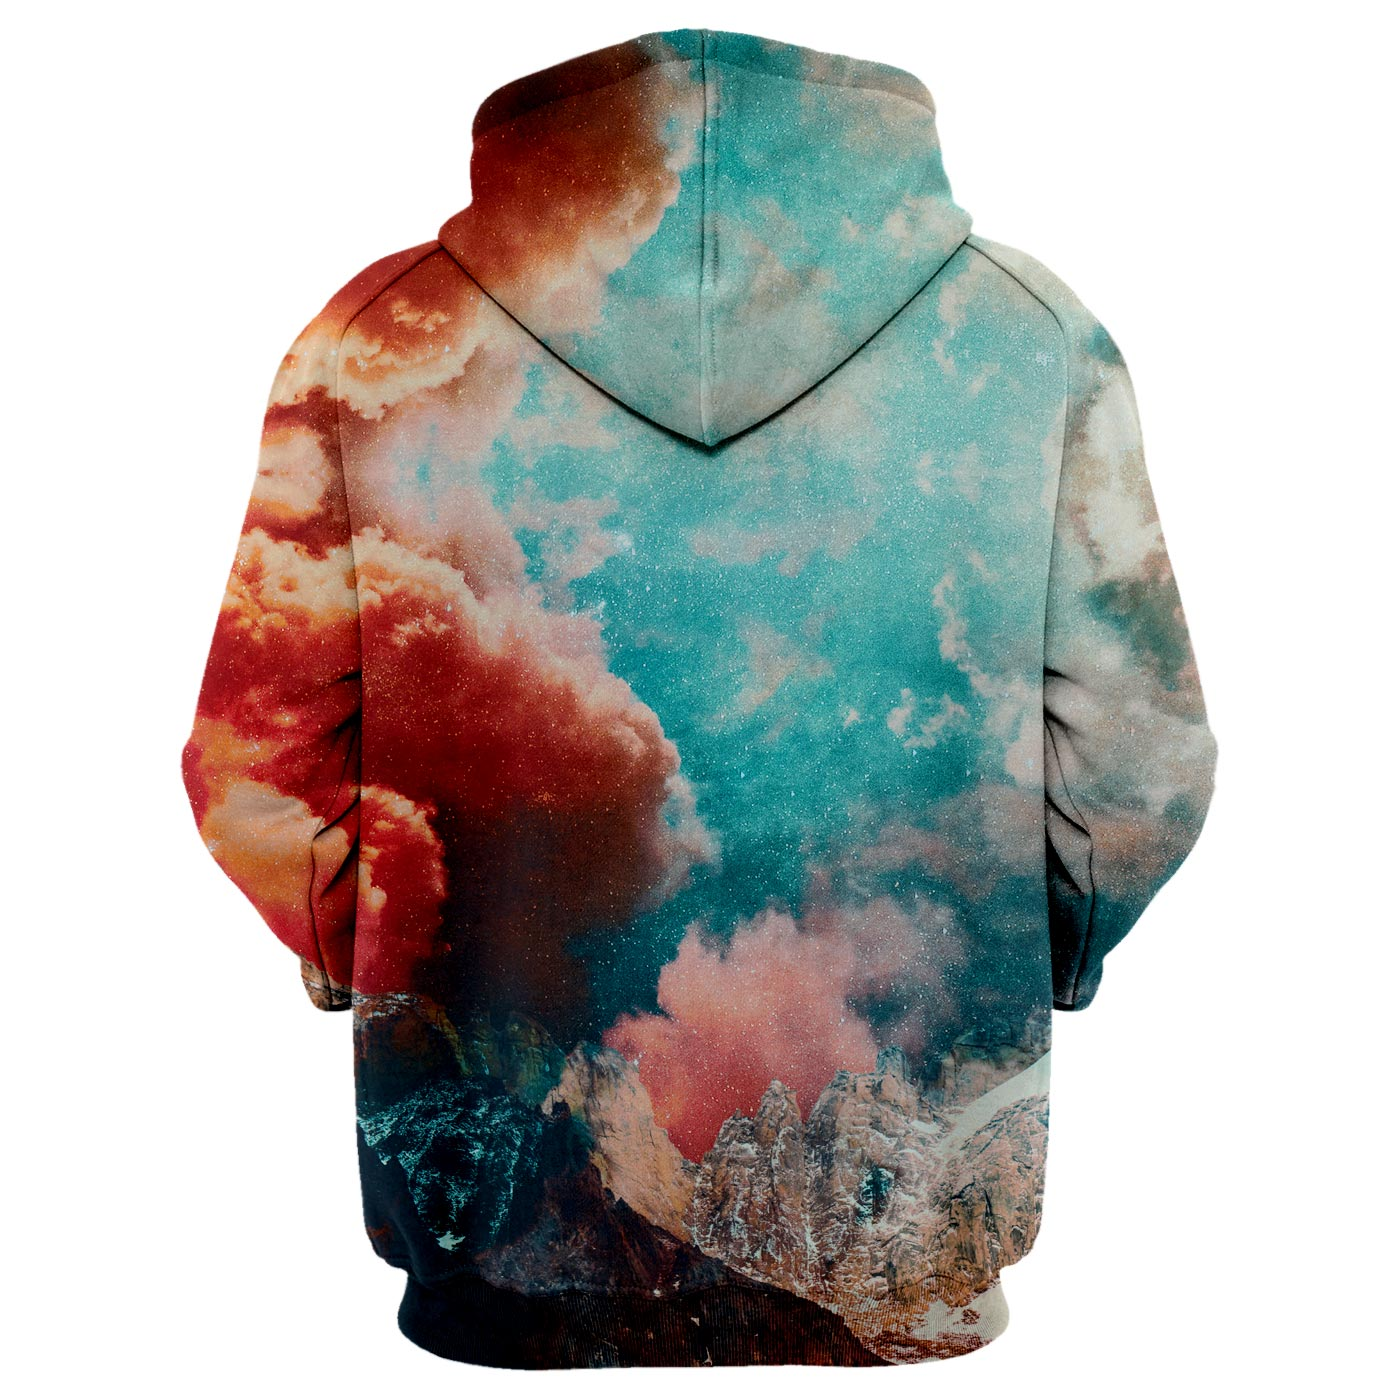 Between Clouds Hoodie